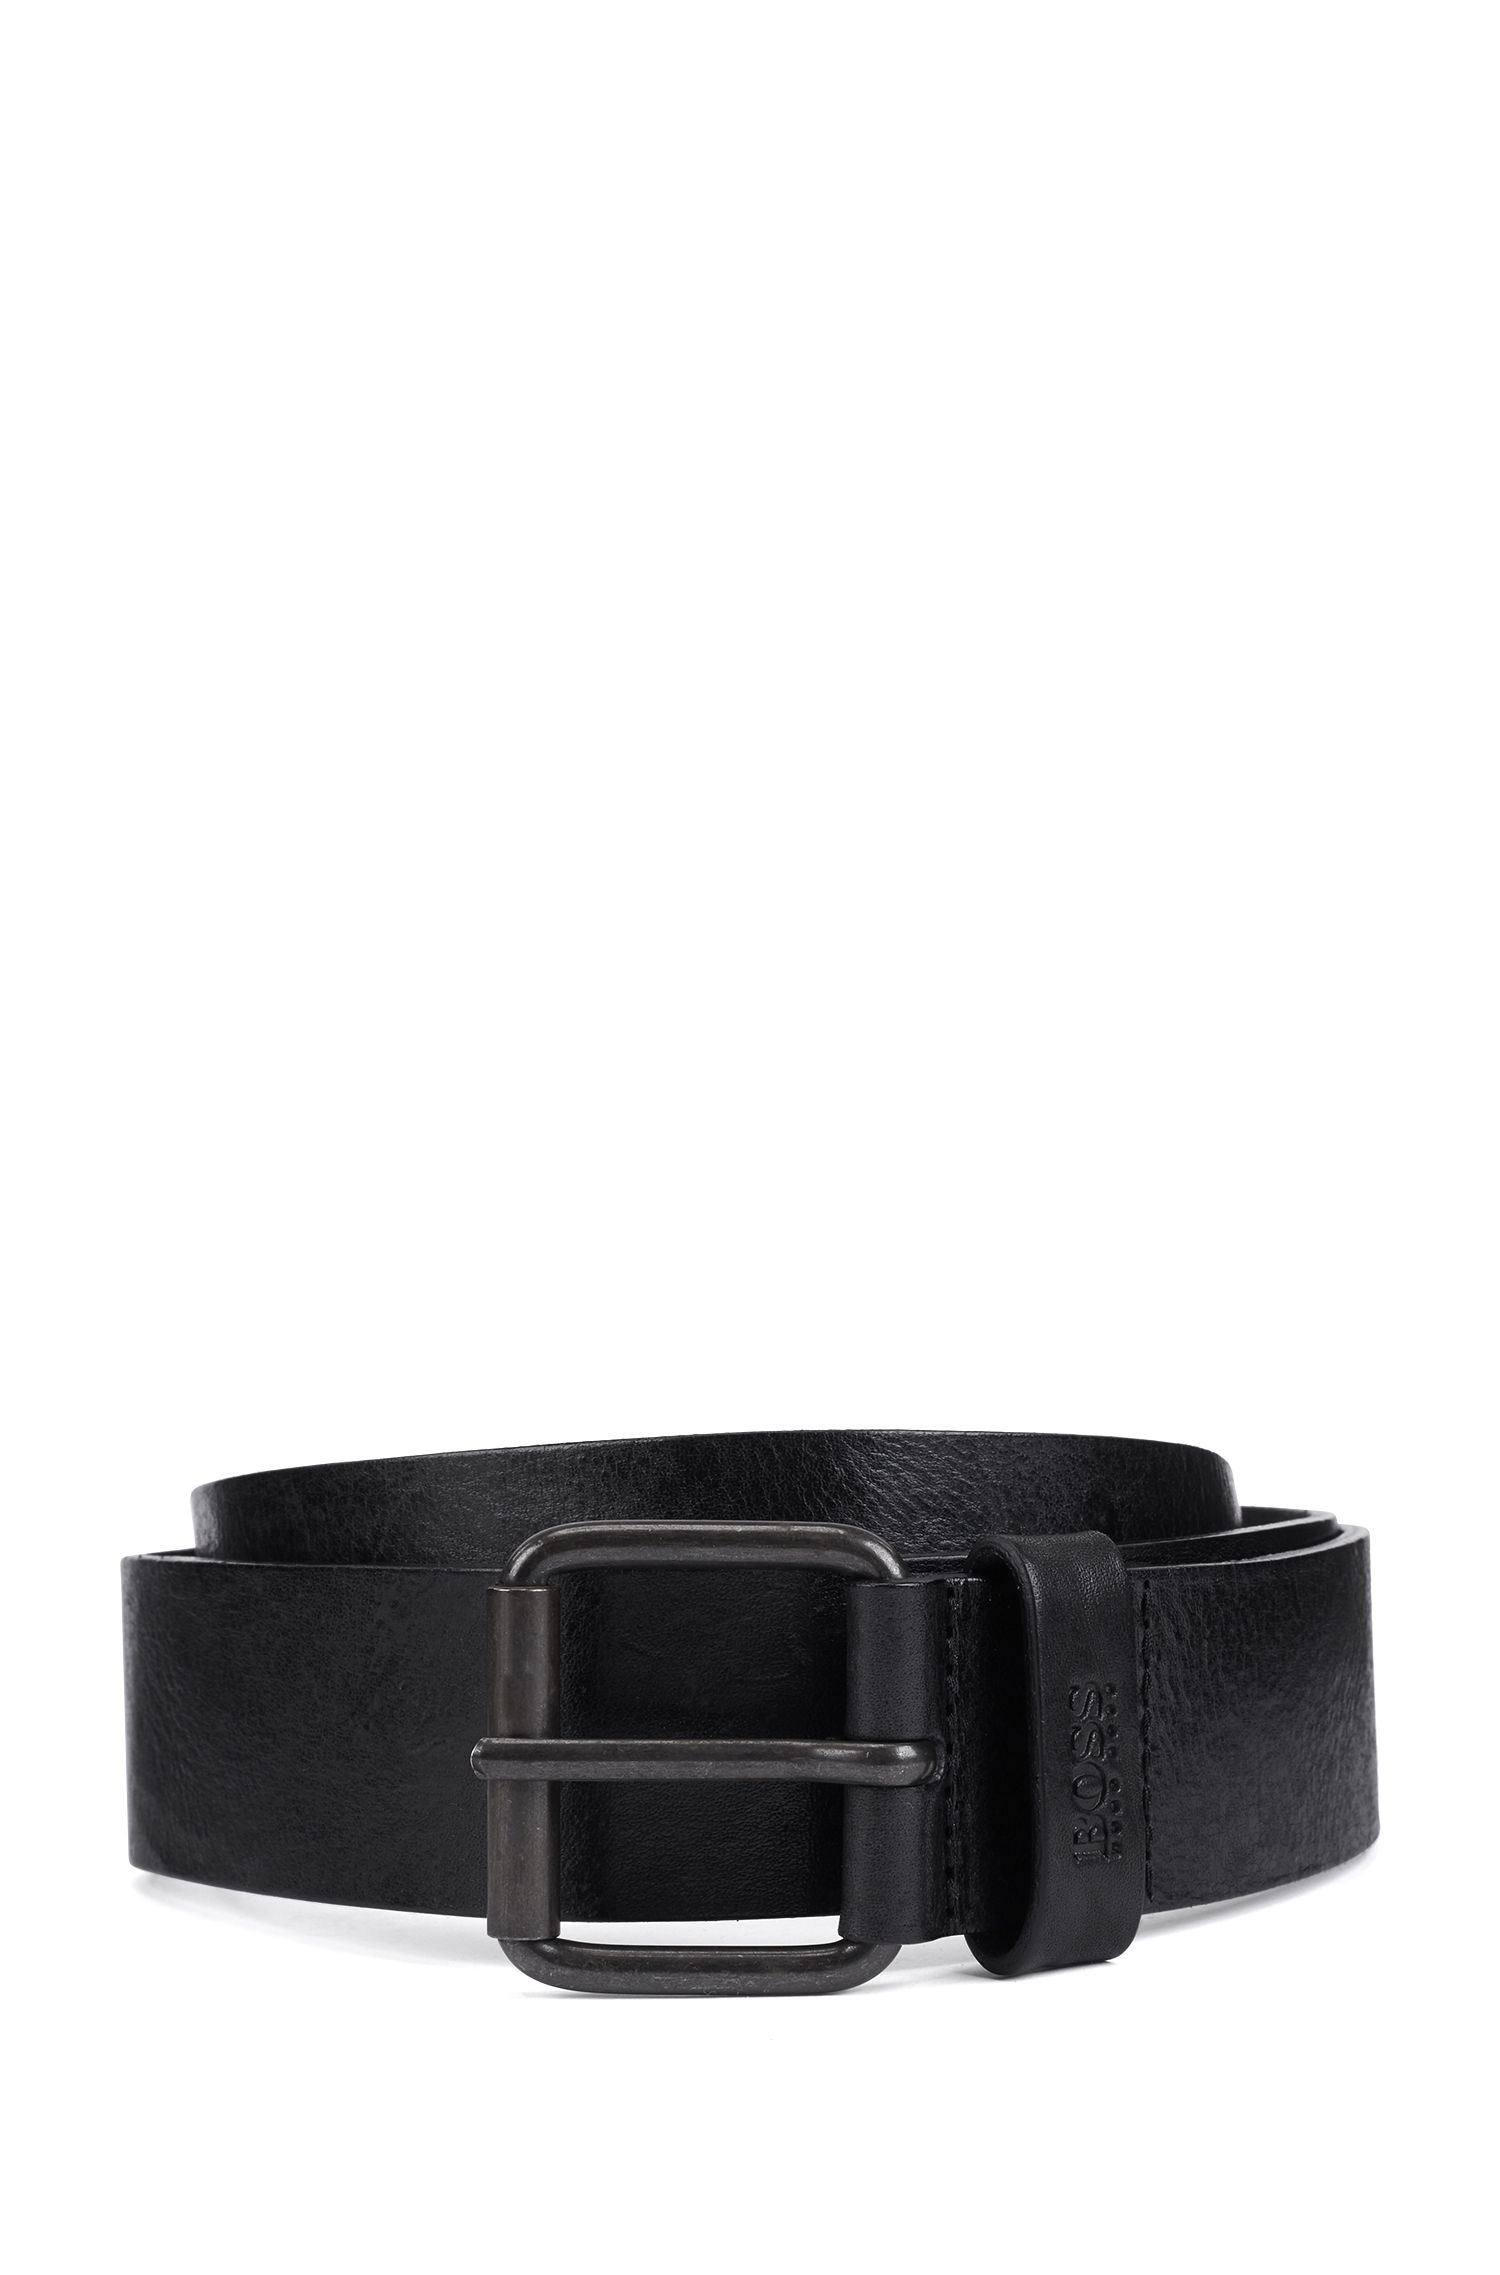 Roller-buckle belt in tumbled leather, Black